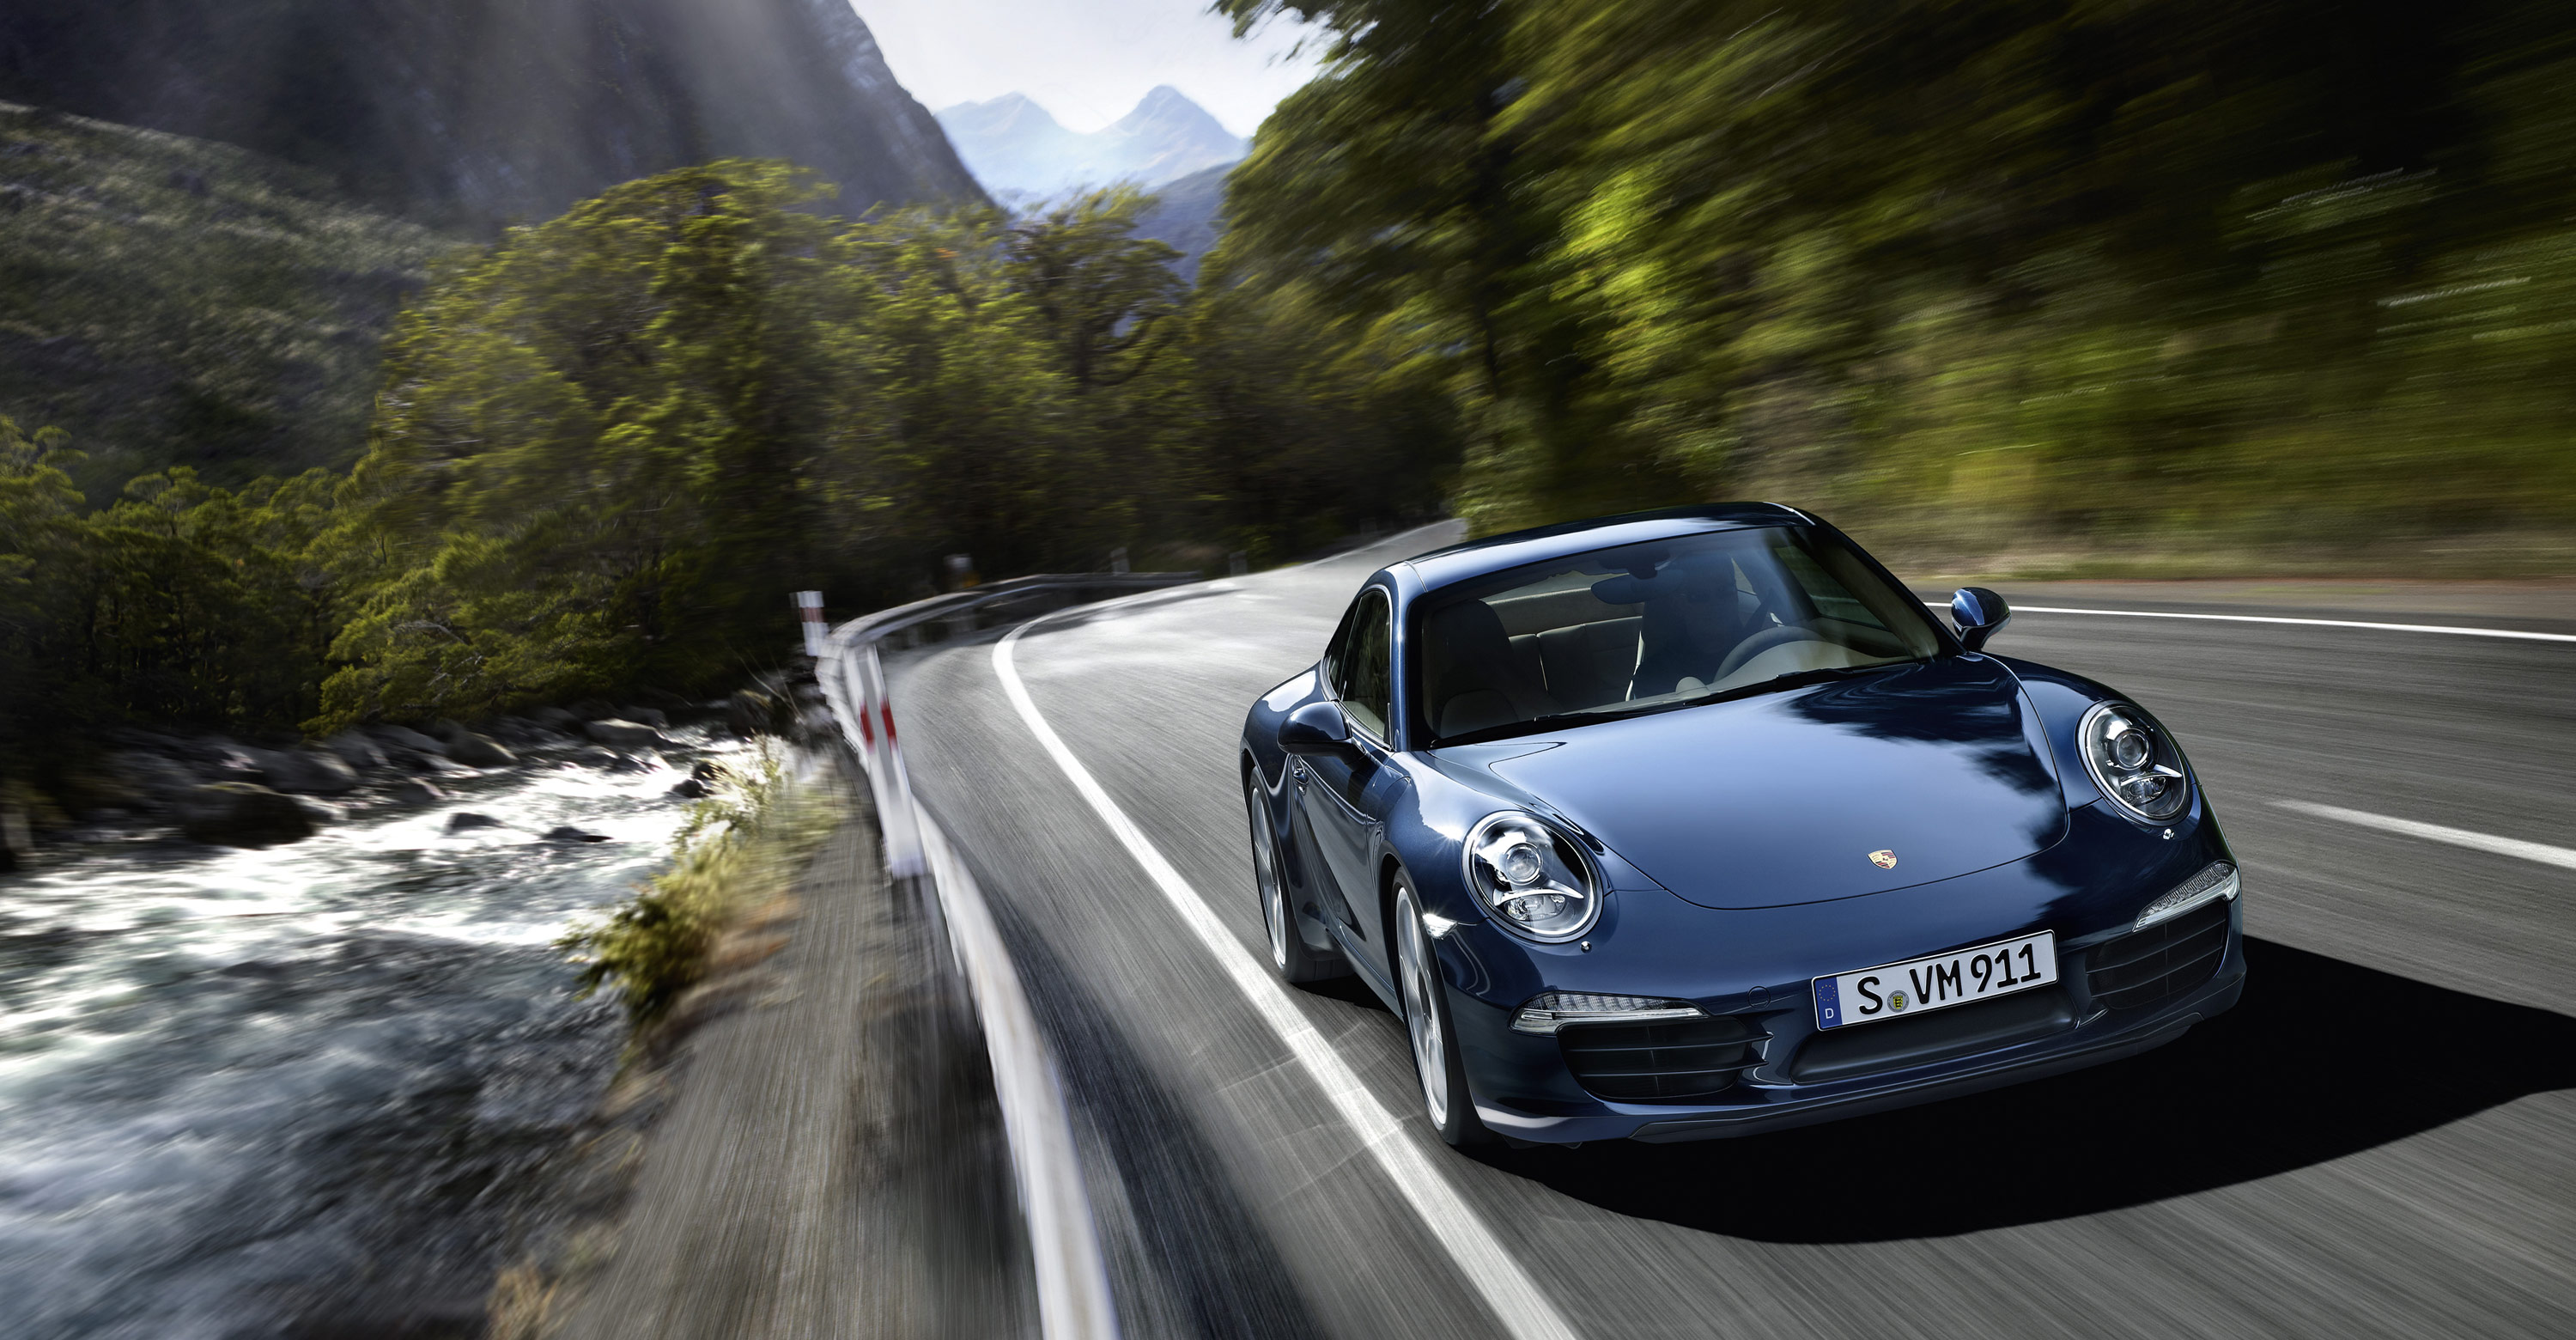 Police Car 4k Wallpaper 2012 Blue Porsche 911 Carrera S Wallpapers